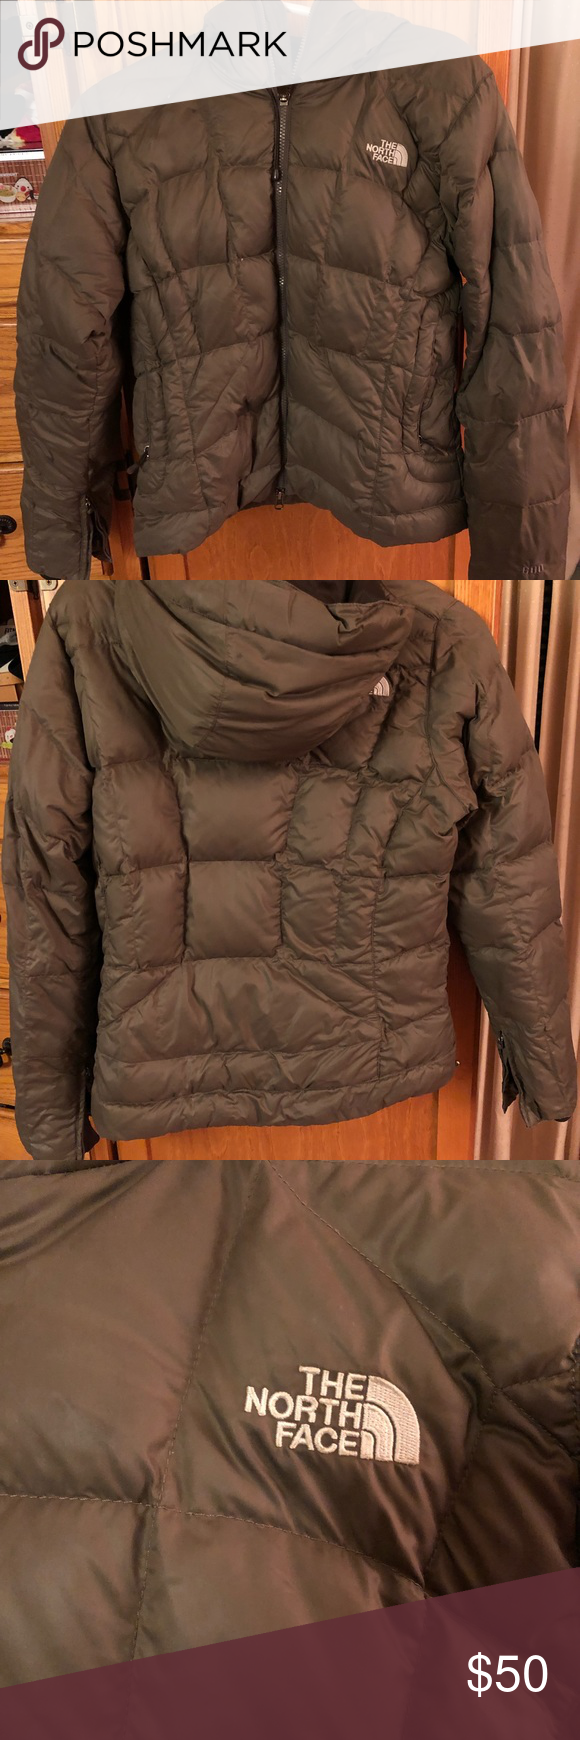 North Face Puffer Coat with Hood Puffer coat with hood